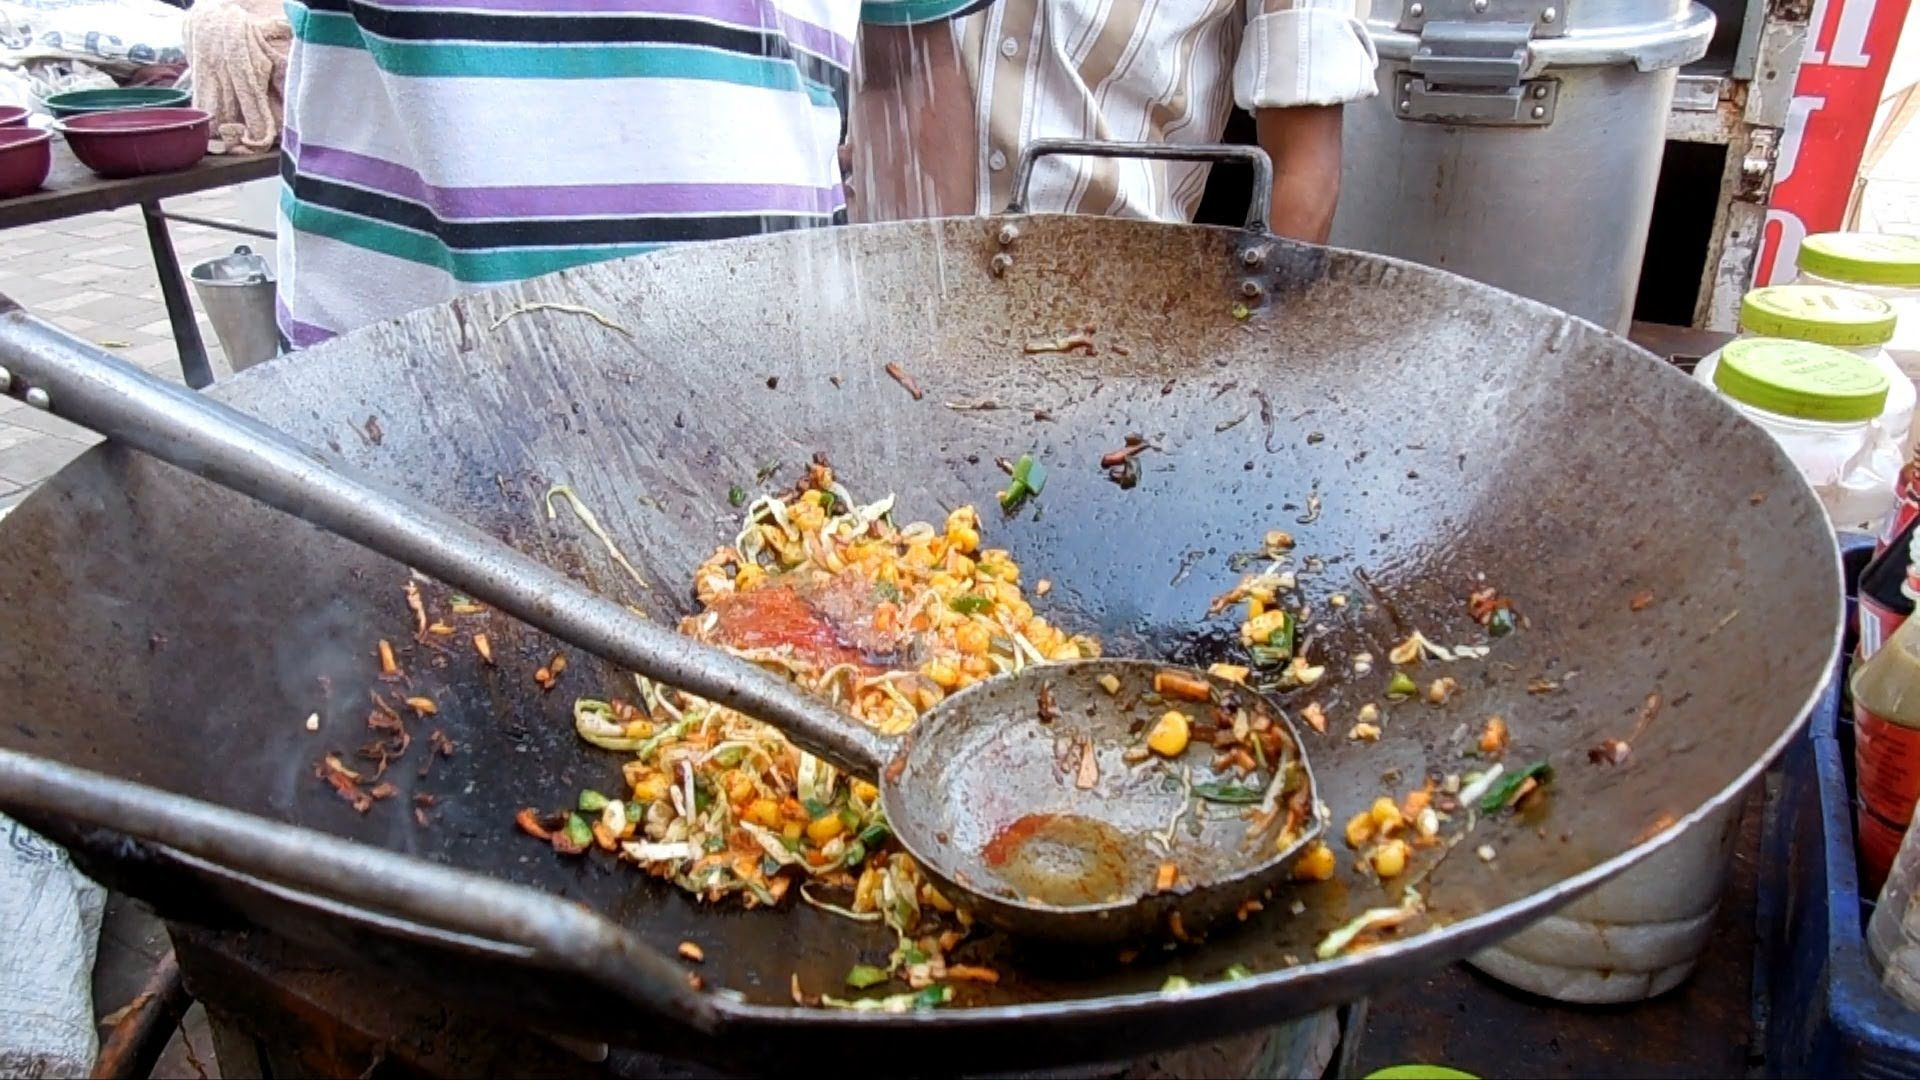 Indian street food scene the skillful master chefs in the street indian street food scene the skillful master chefs in the street kit http forumfinder Images